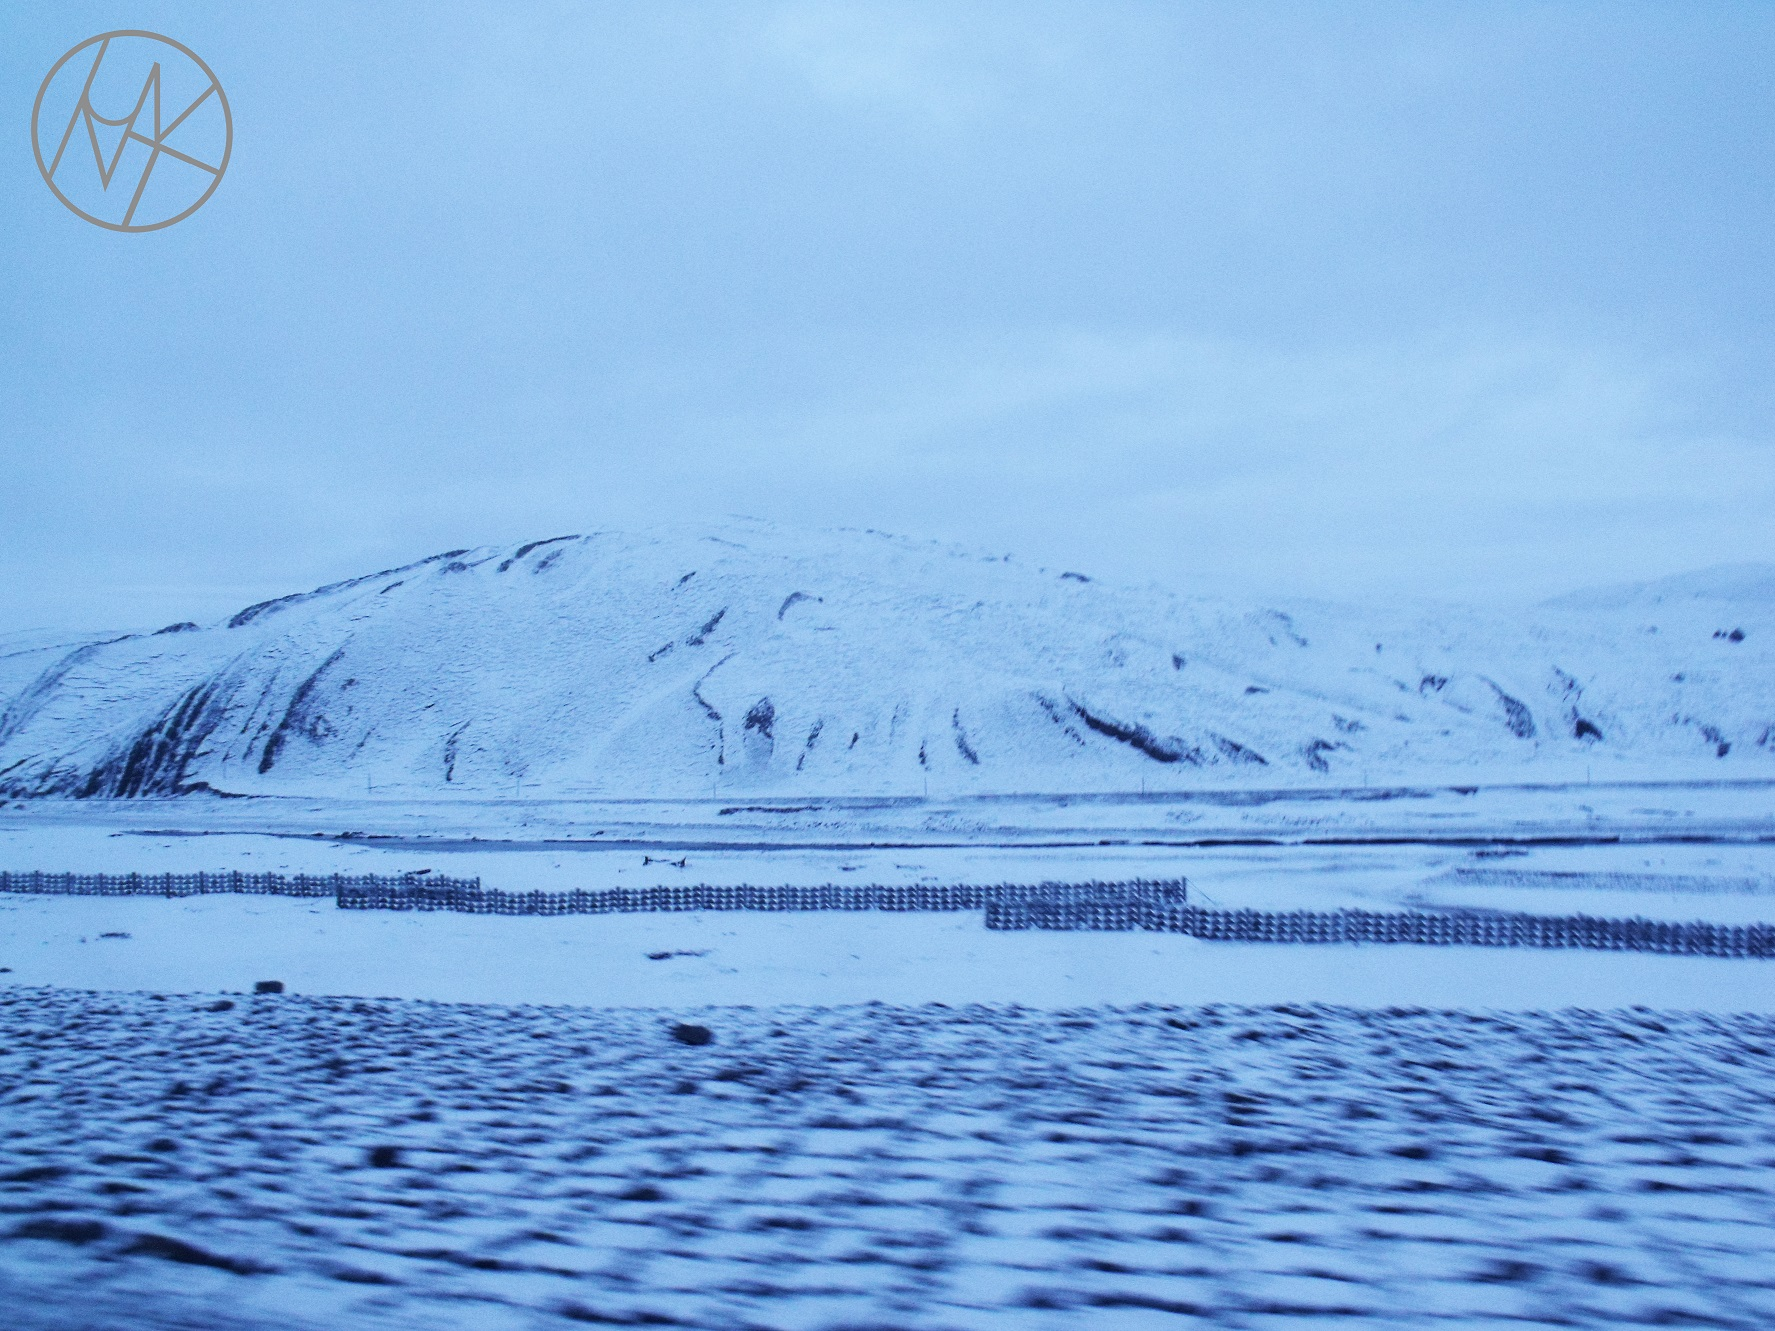 tibet_snow_land_of_snow_utazas.JPG